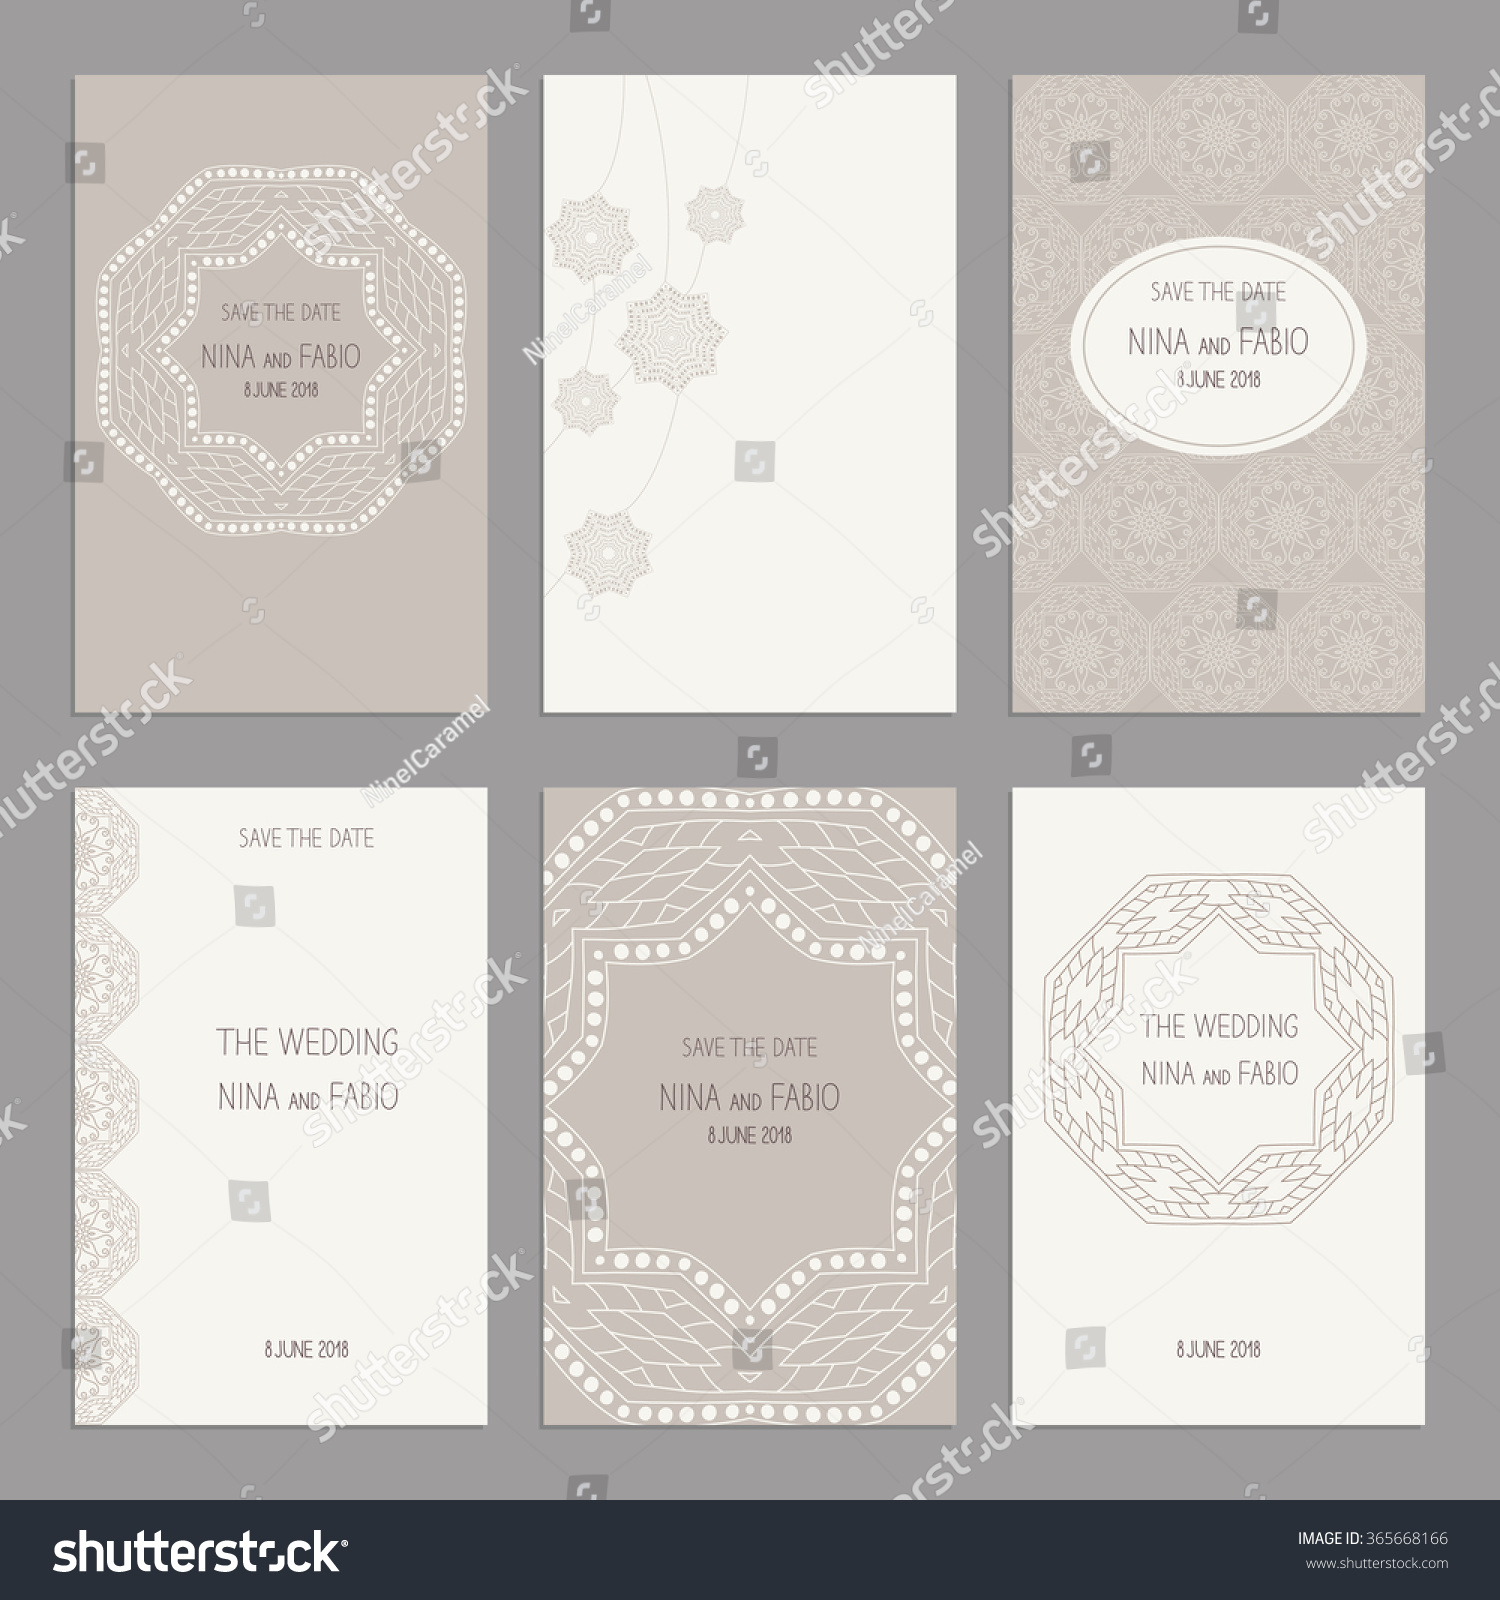 Templates Greeting Business Cards Brochures Covers Stock Vector ...